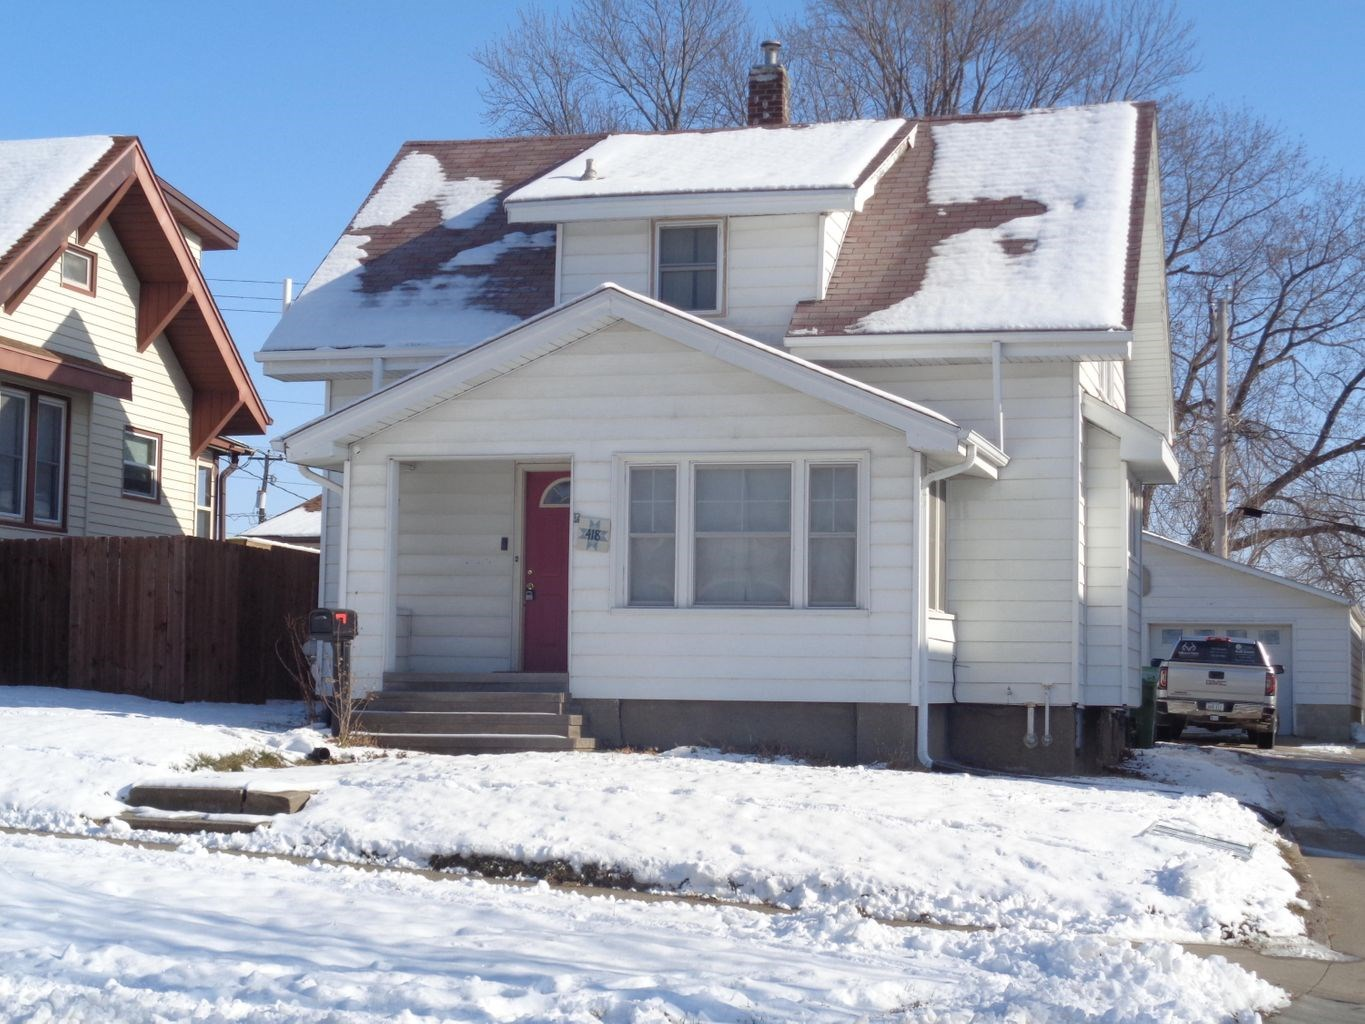 1.5 STORY HOME FOR SALE MISSOURI VALLEY IOWA